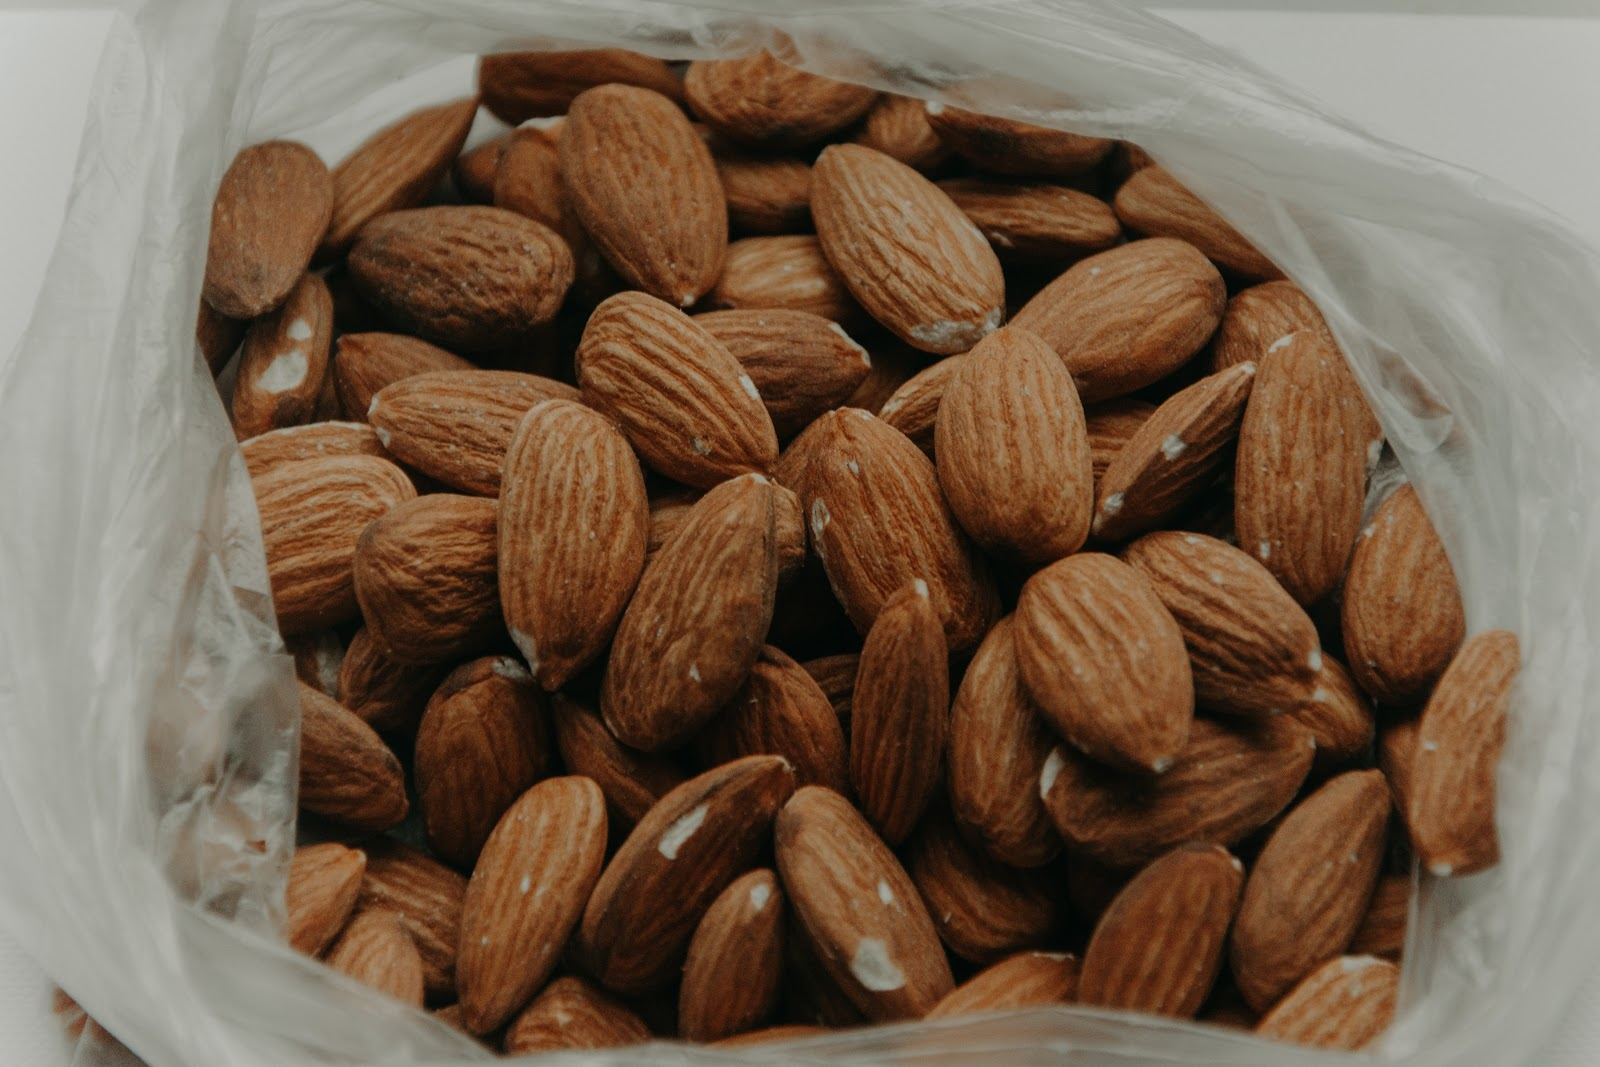 Food Allergies at Summer Camp: What to Know and What to Do